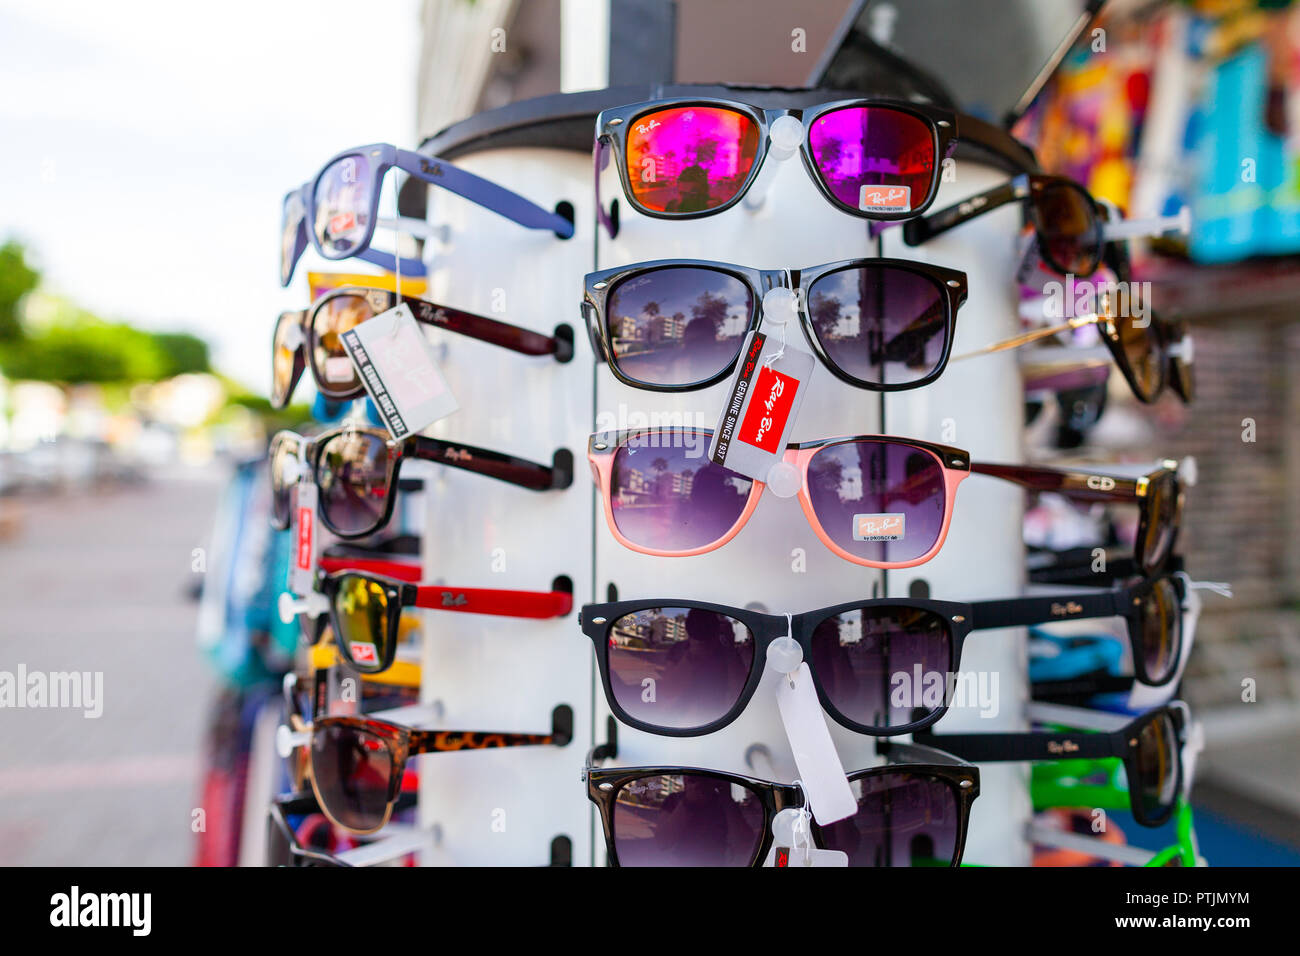 d01c279f0a4 ... store alanya turkey september 30 2018 sunglasses from ray ban hangs on  a stand at a